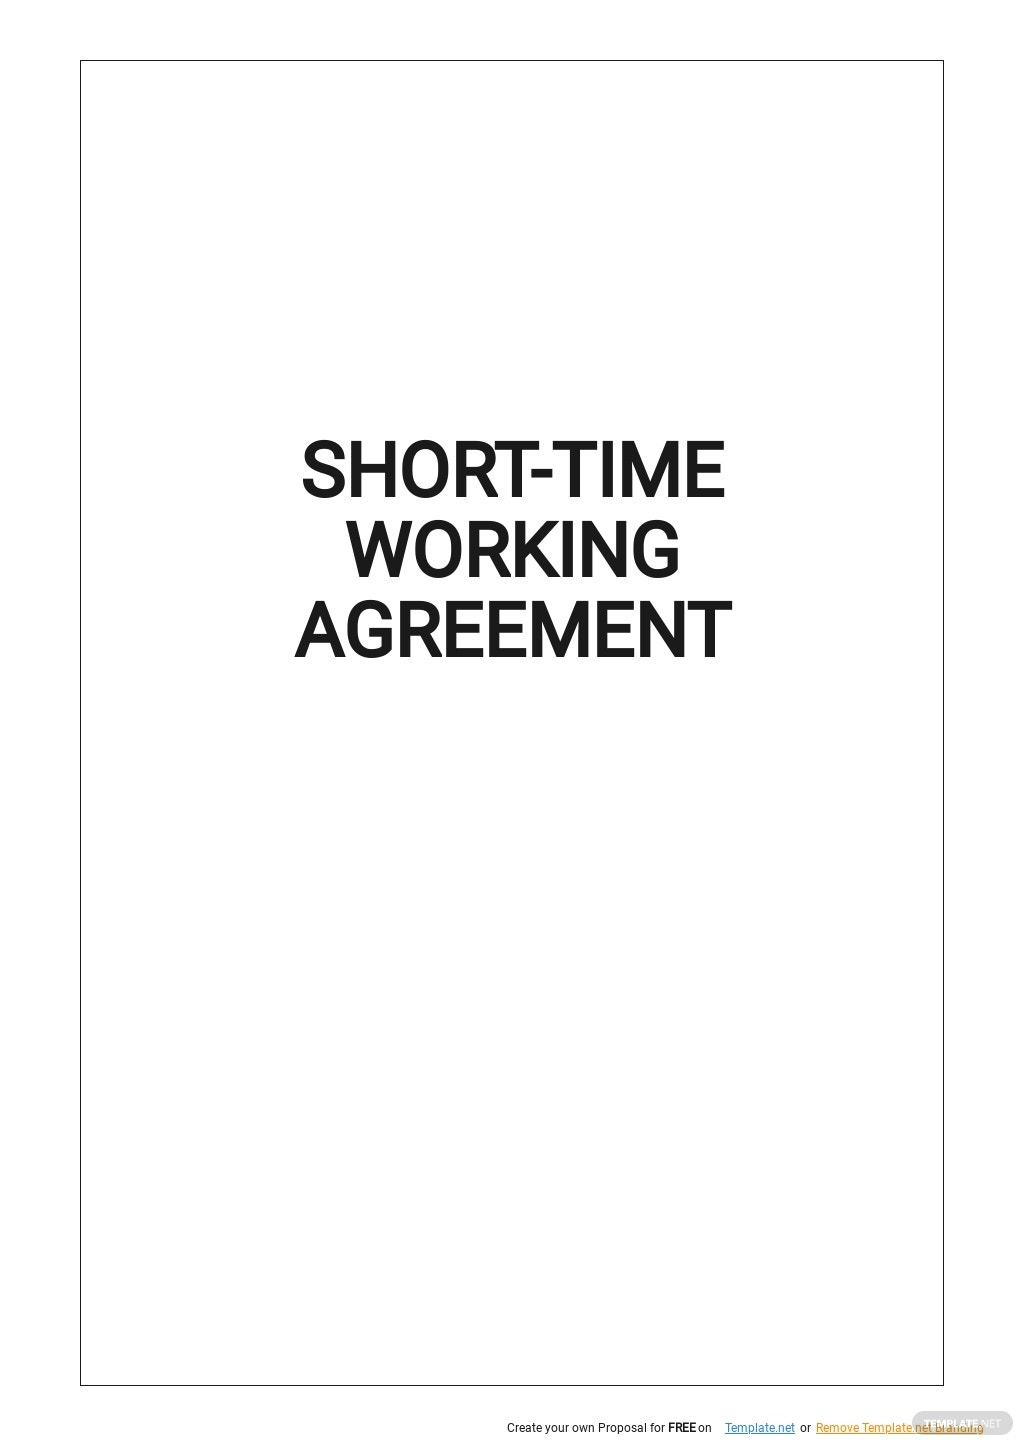 Short Time Working Agreement Template.jpe